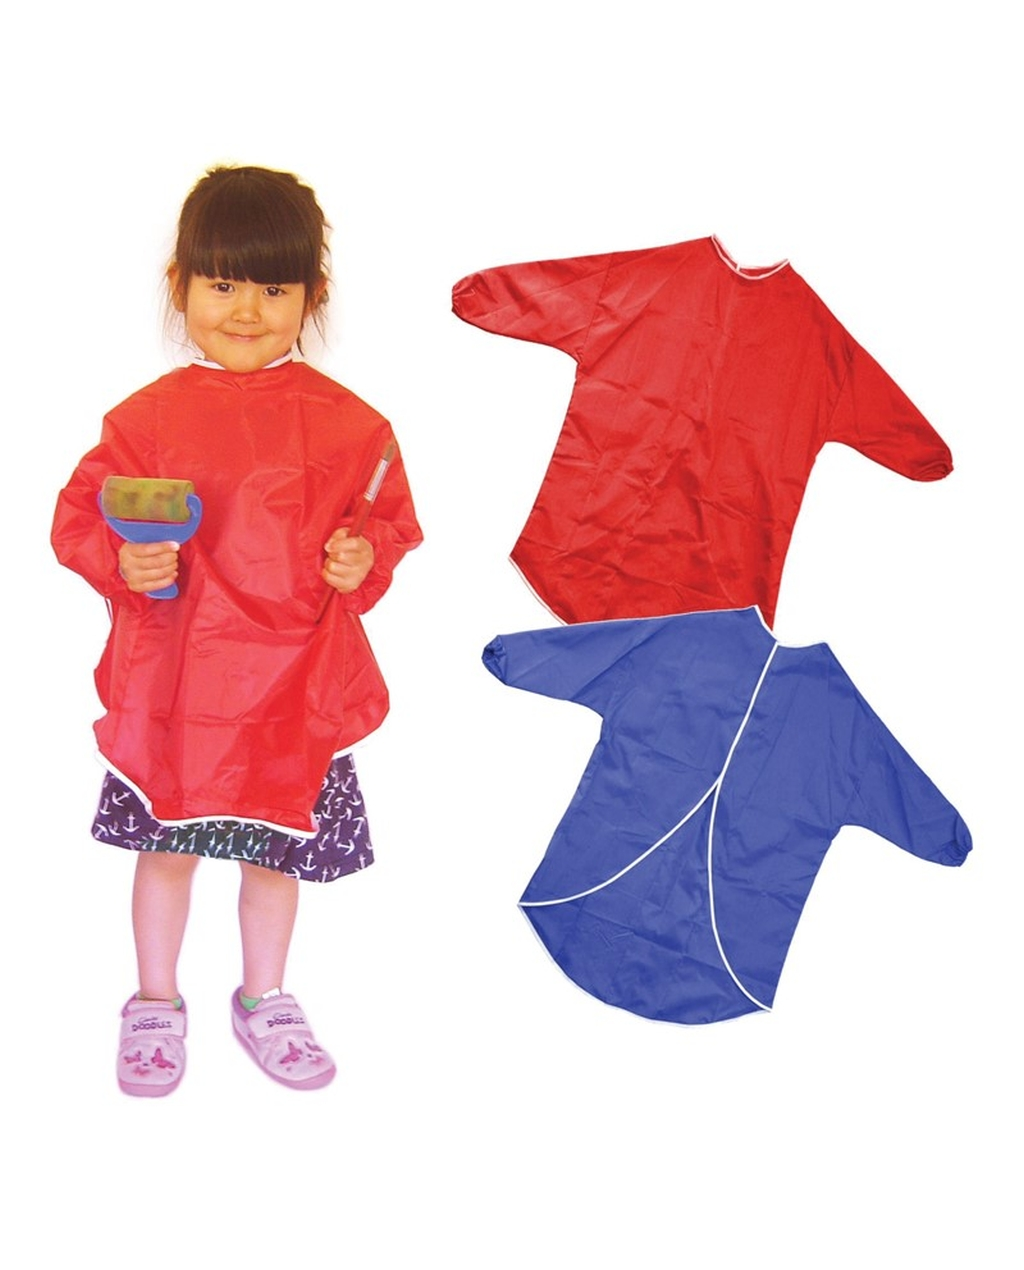 Children's Play Apron 60cm Red